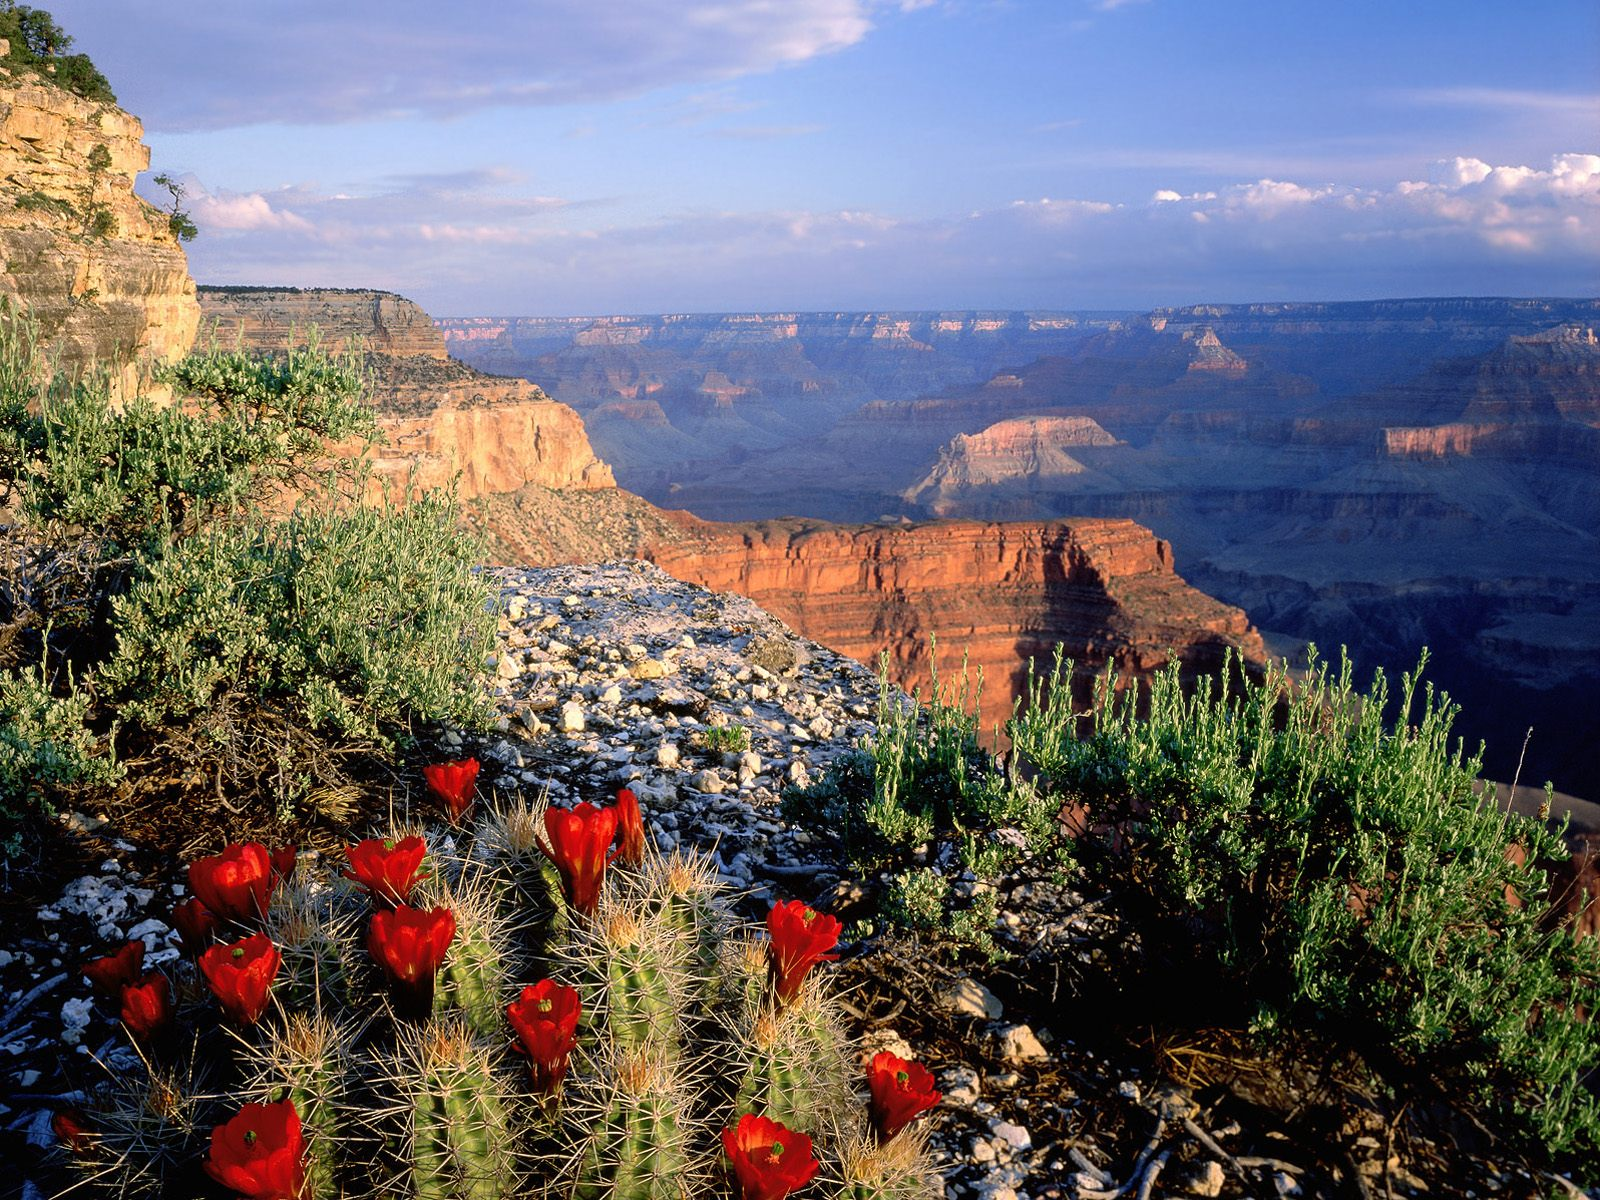 Flowers grow in the canyons